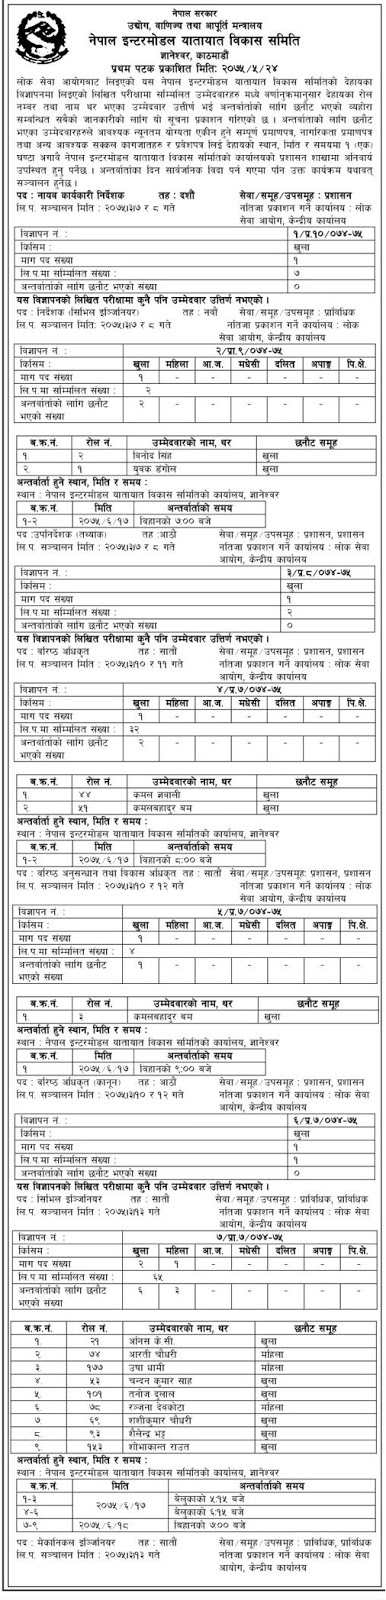 Nepal Intermodal Transportion Development Board Published Written Exam Result of Various Post